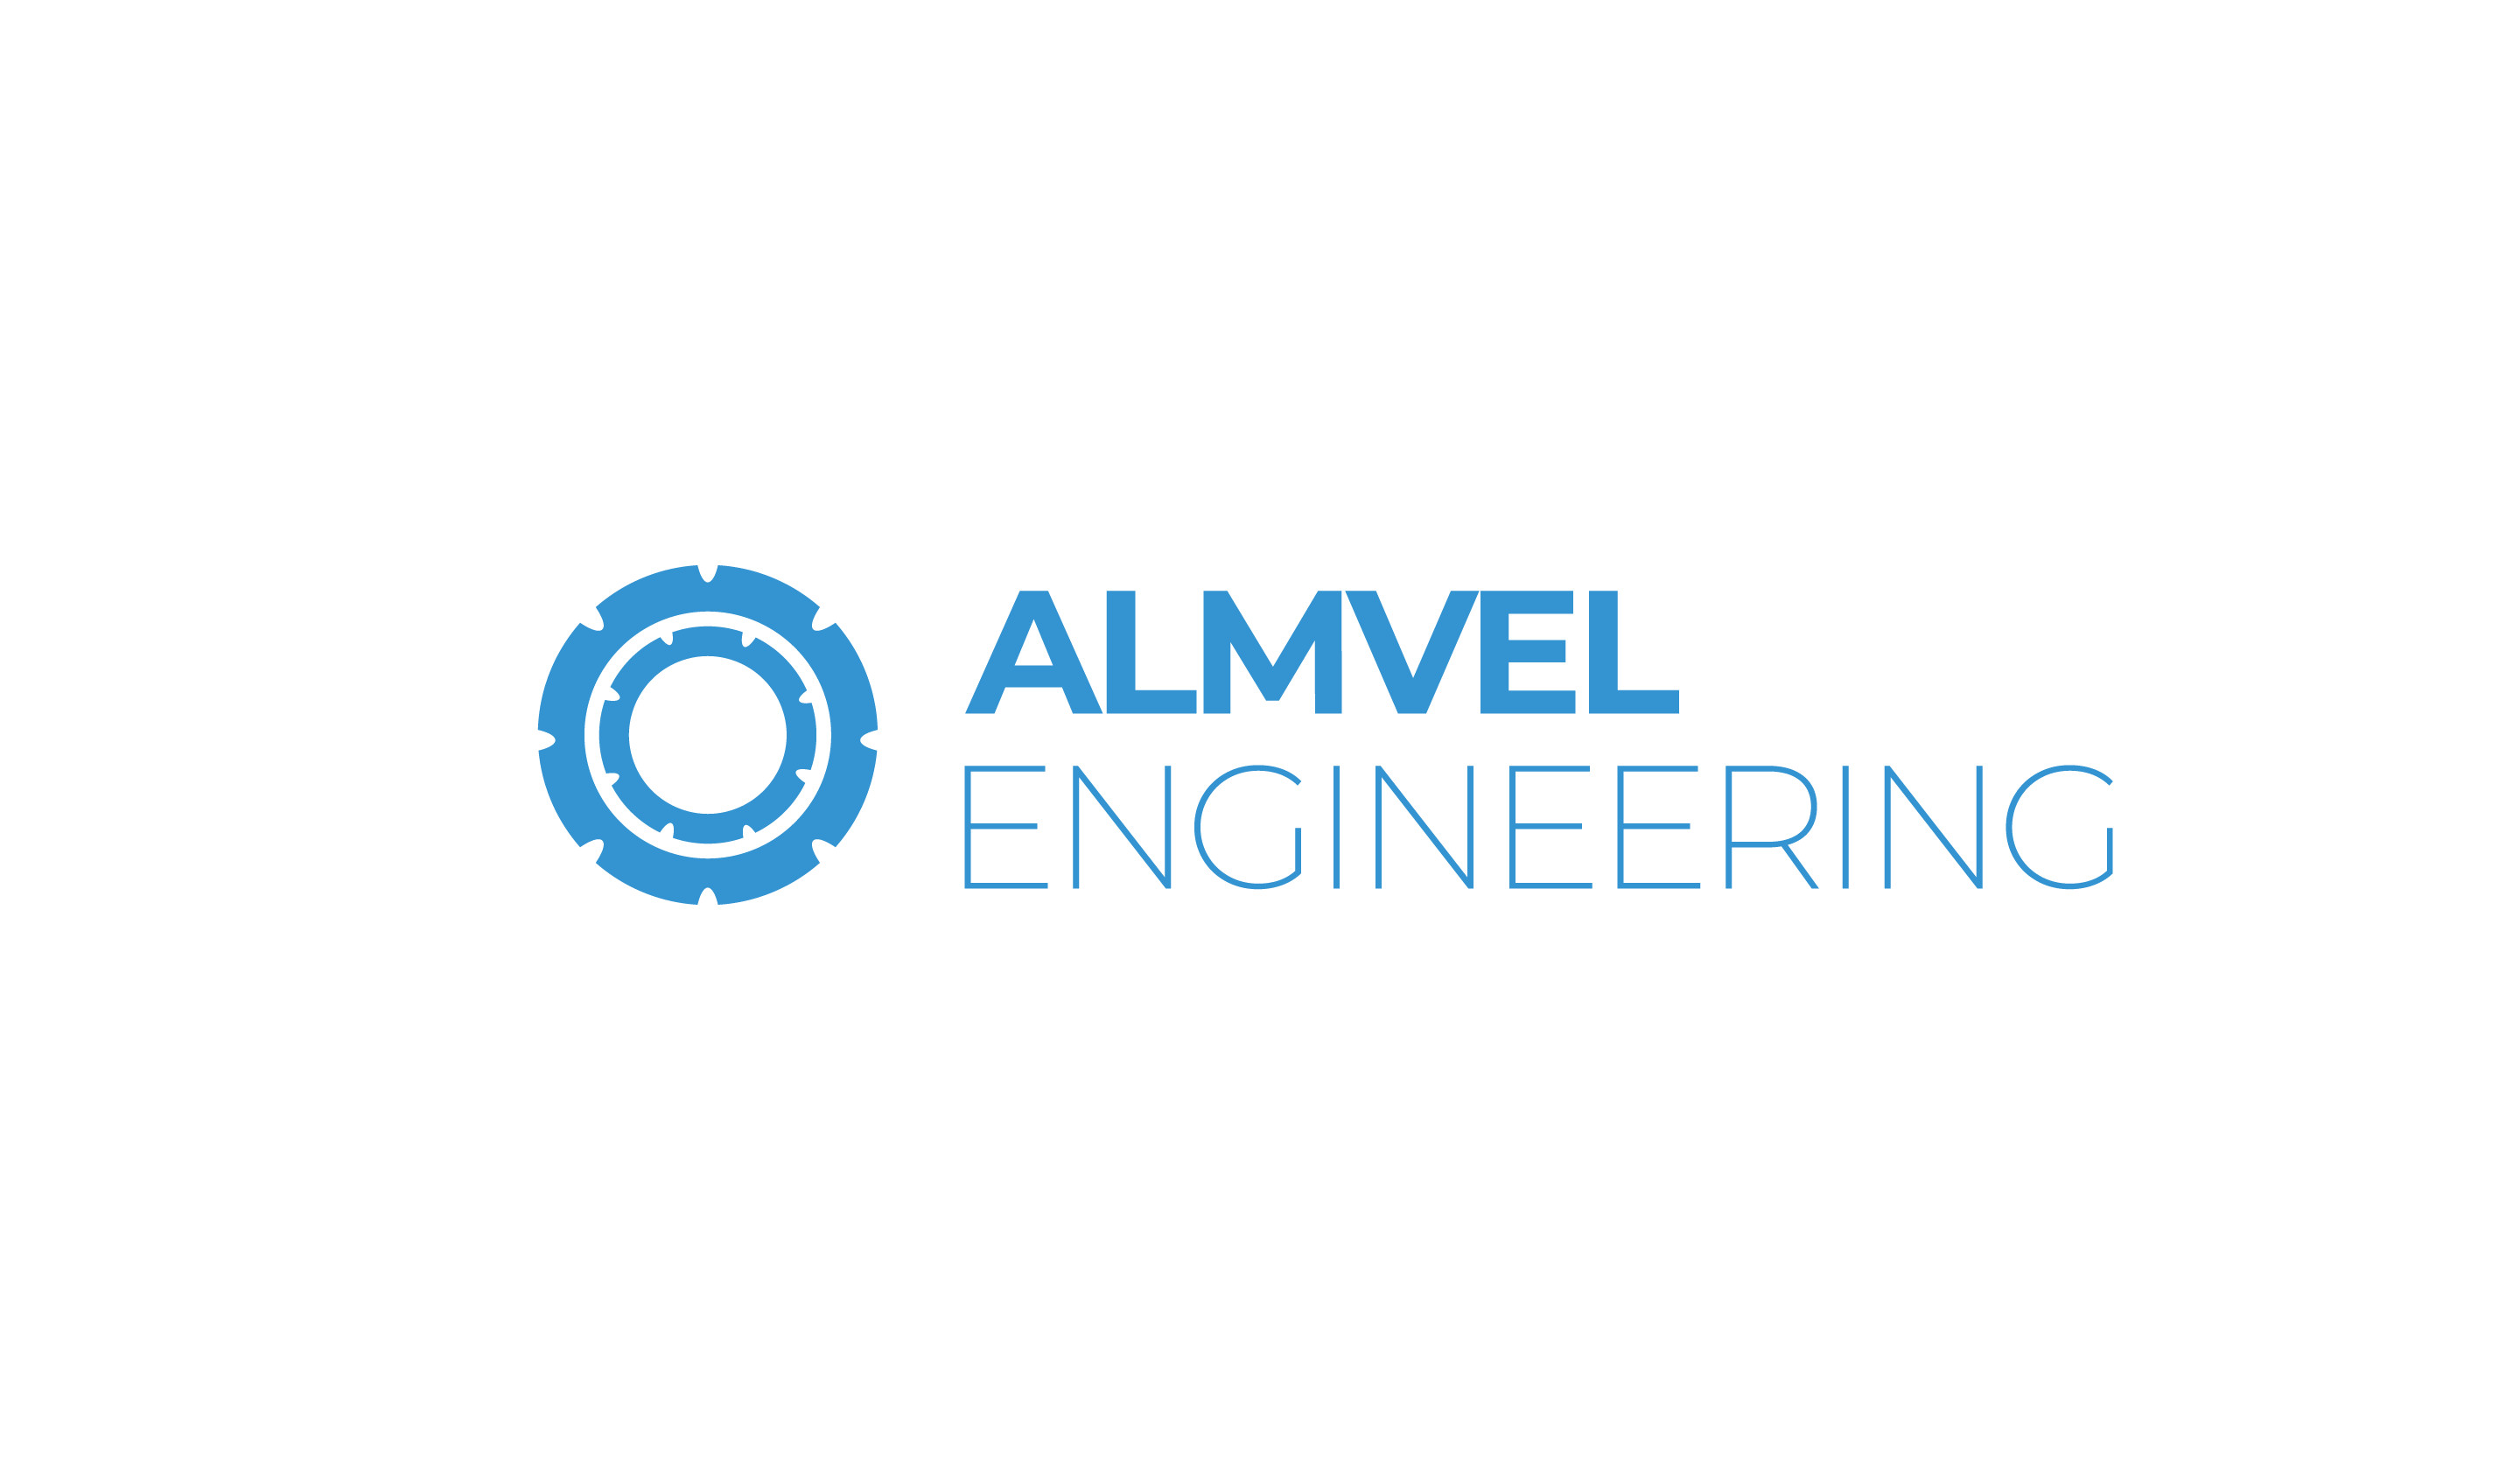 Almvel Engineering